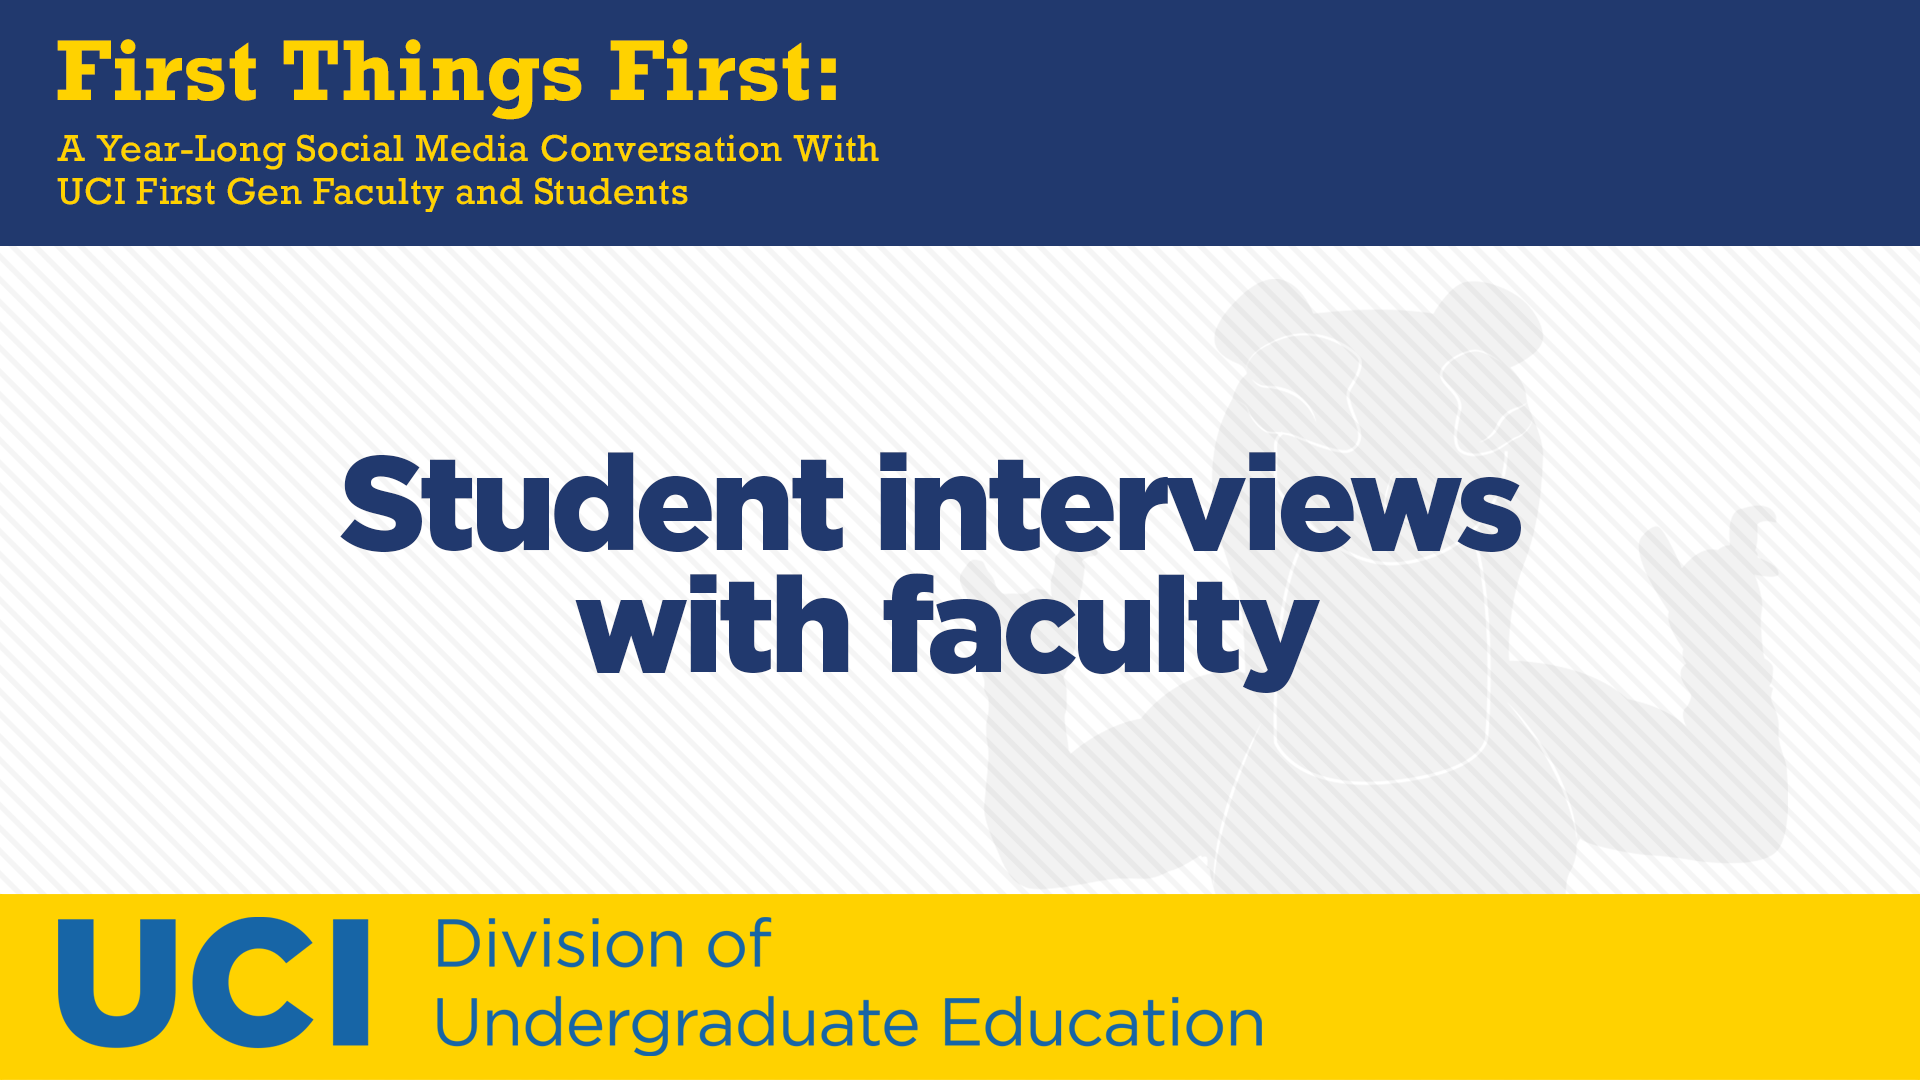 Winter 2021 End-of-Quarter Student Interviews with Faculty